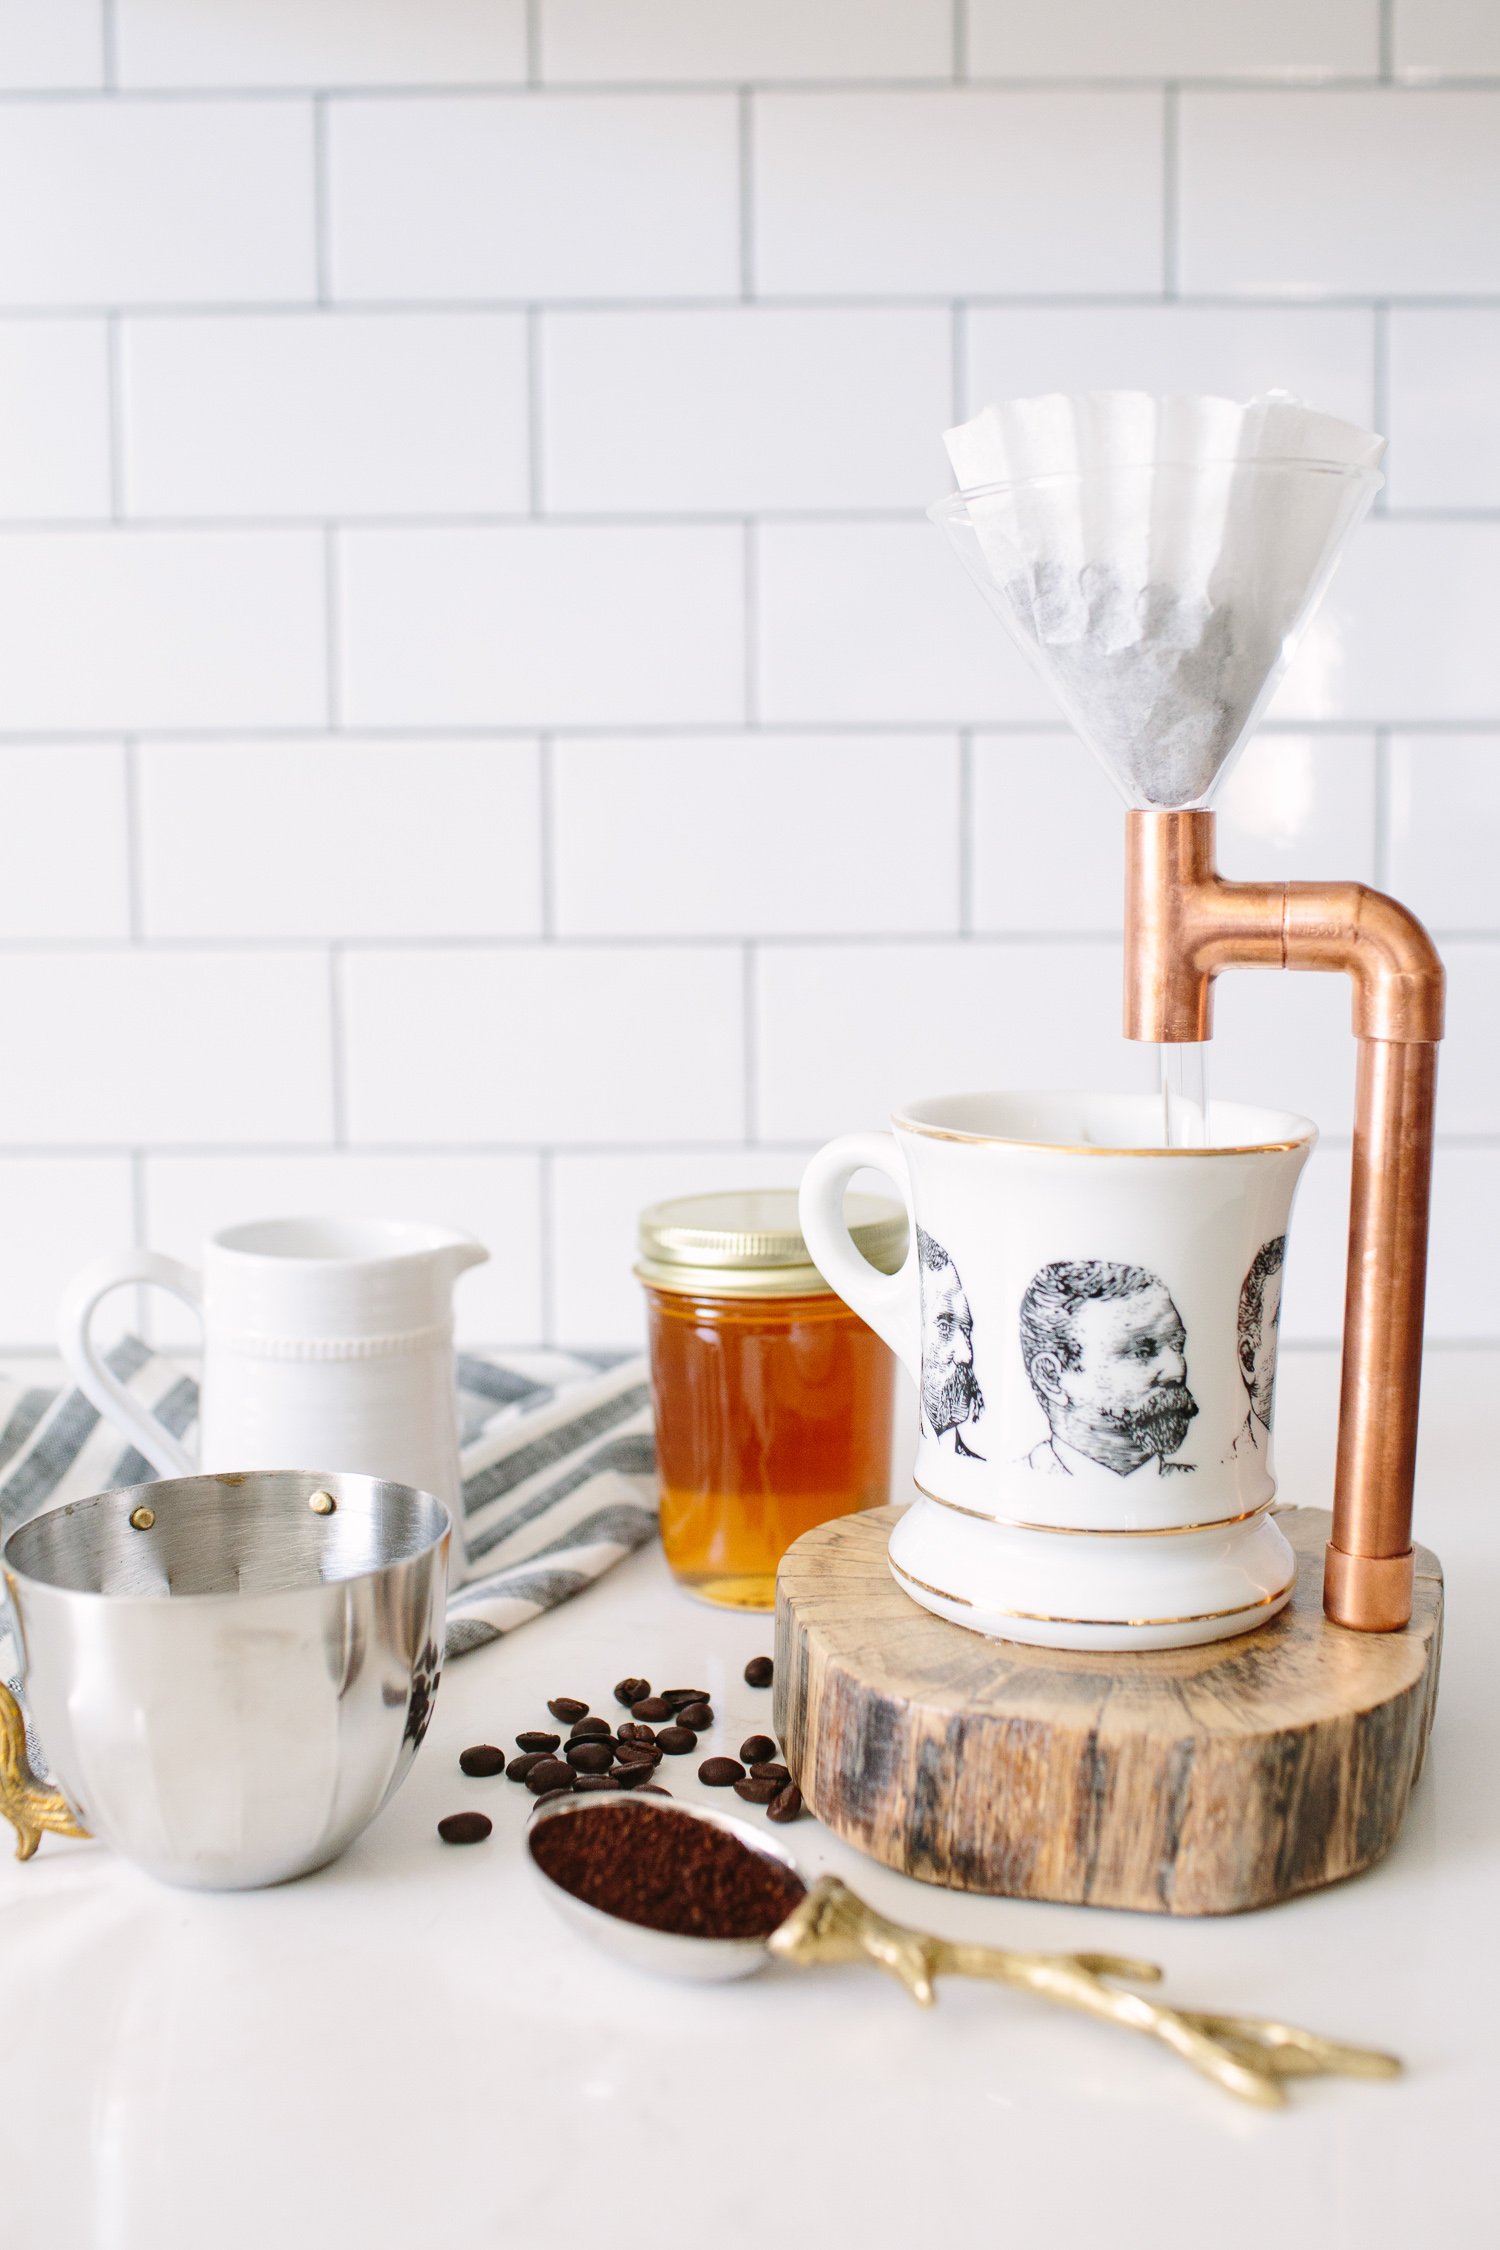 Pour Boys Coffee Co. - Handmade Pour Over Coffee Stands